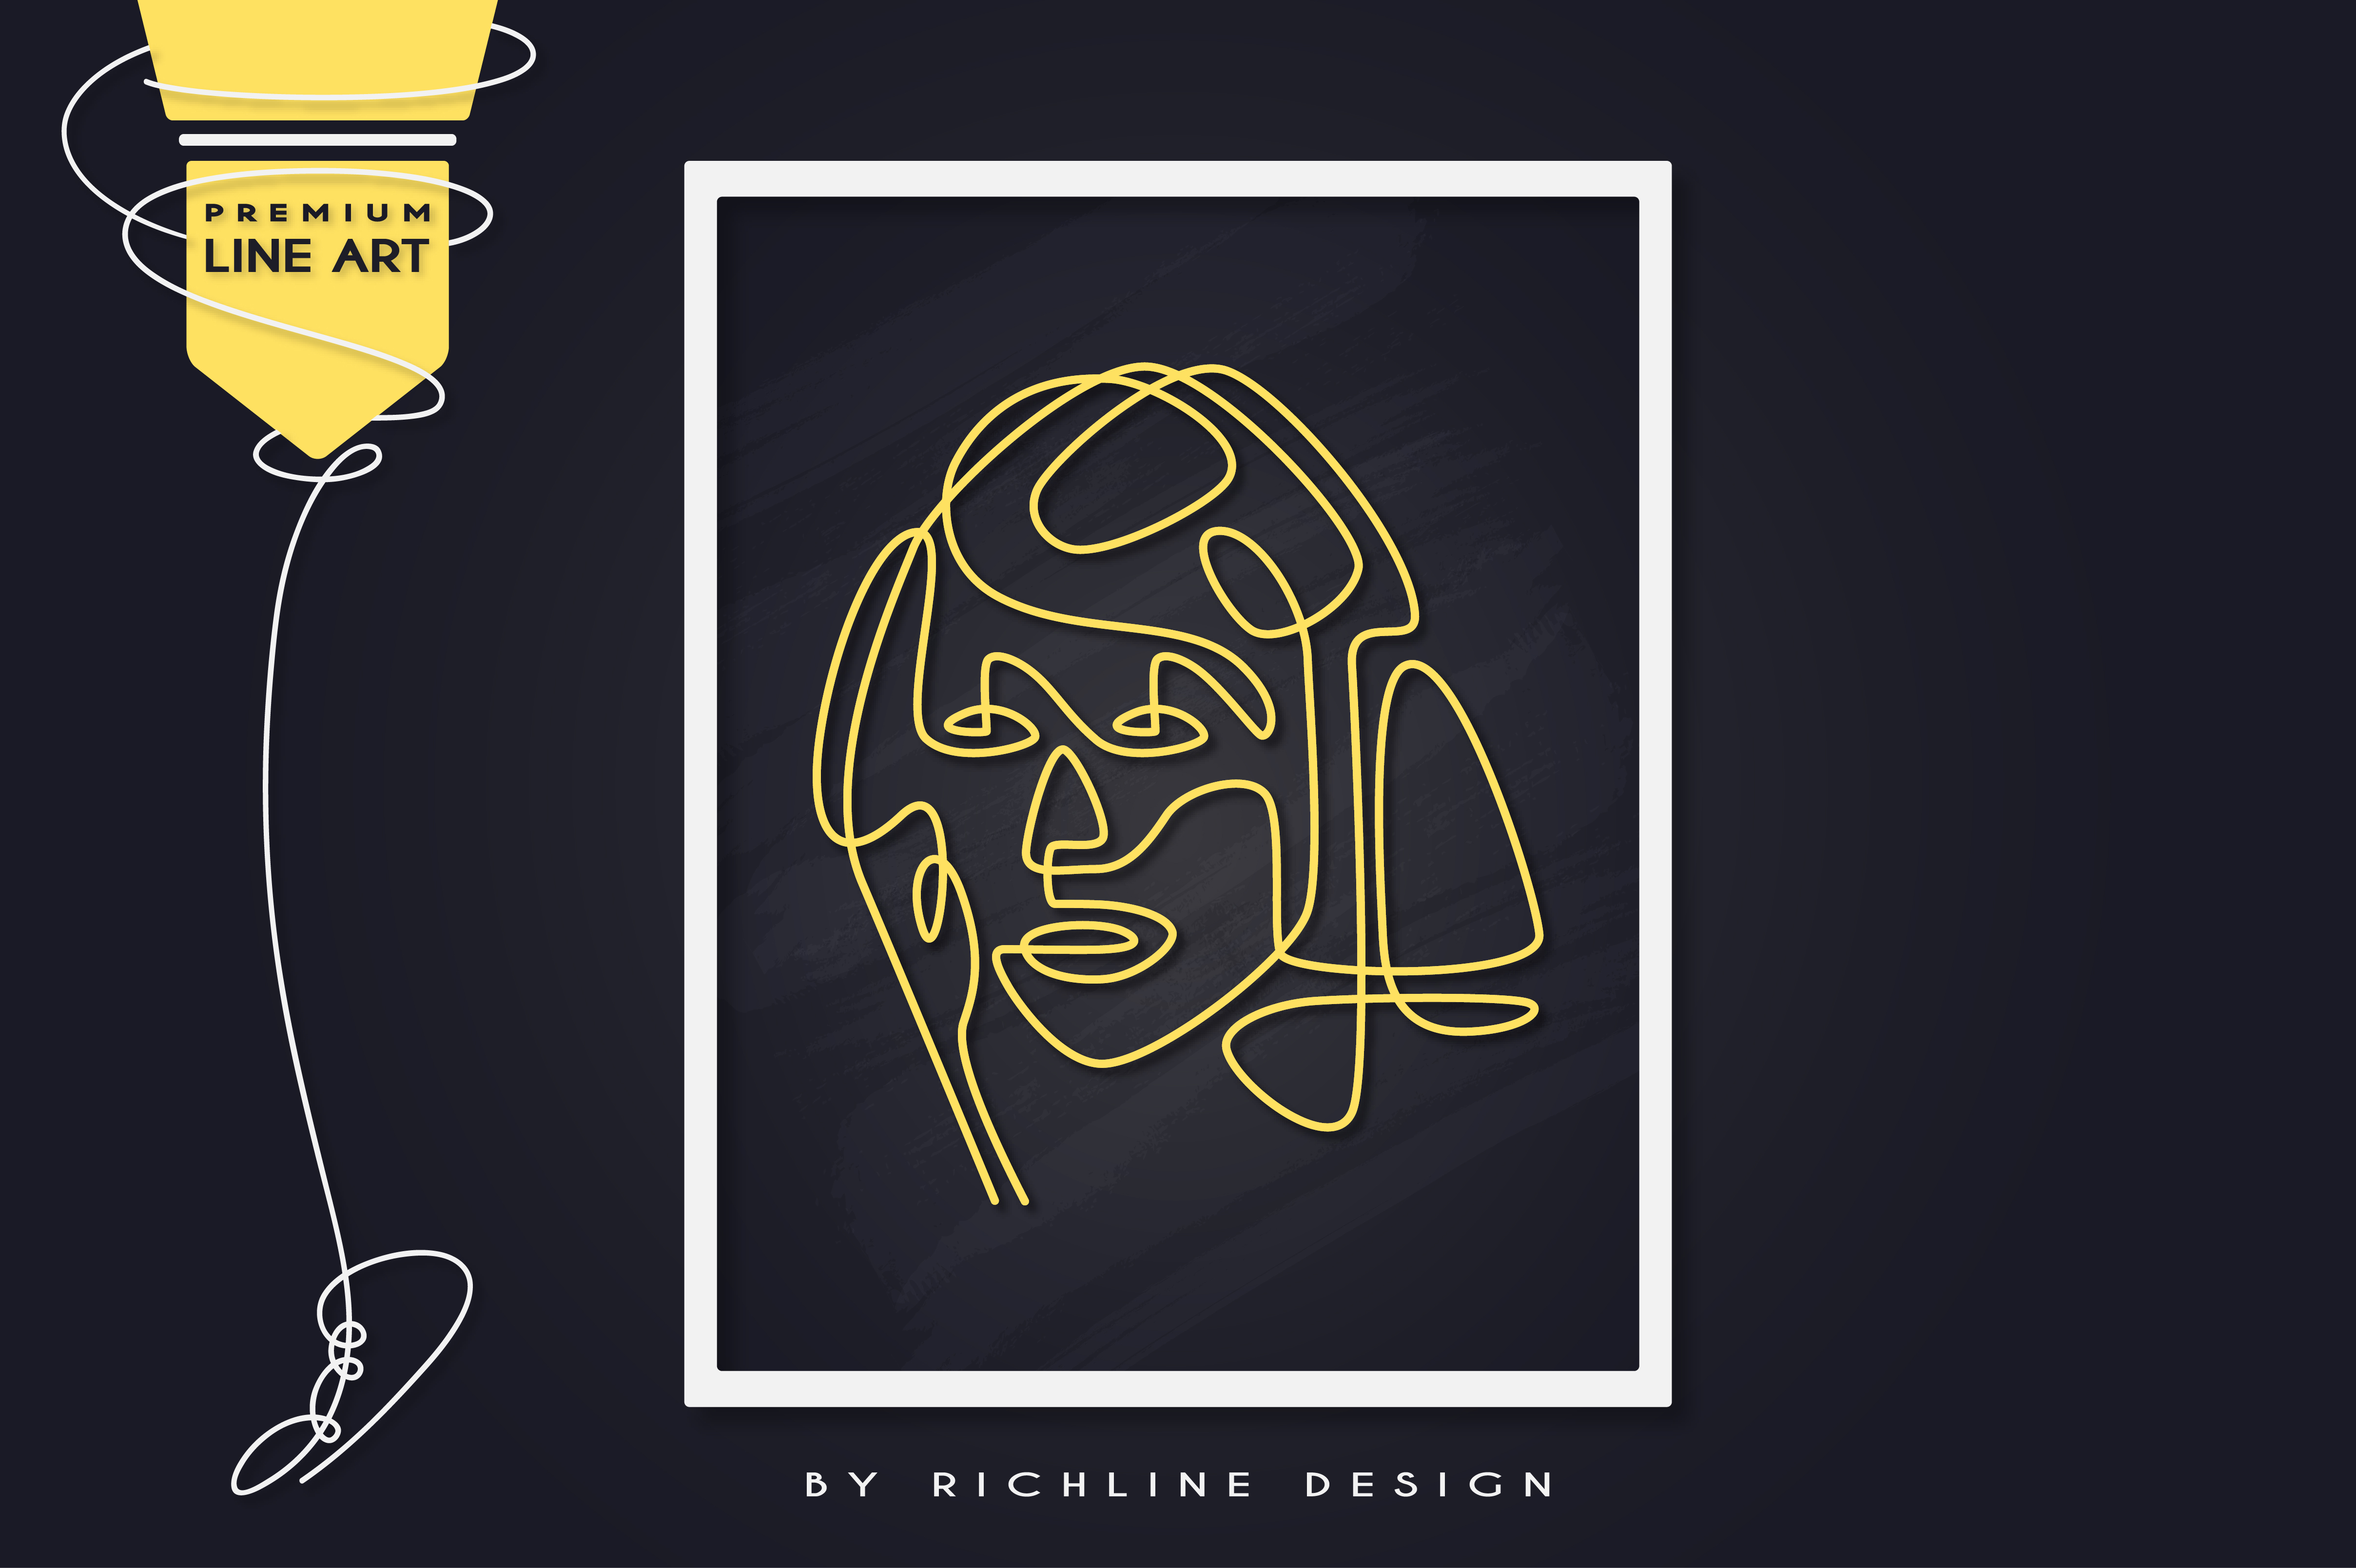 Download Free Line Art Poster Face Beautiful Graphic By Richline Design for Cricut Explore, Silhouette and other cutting machines.